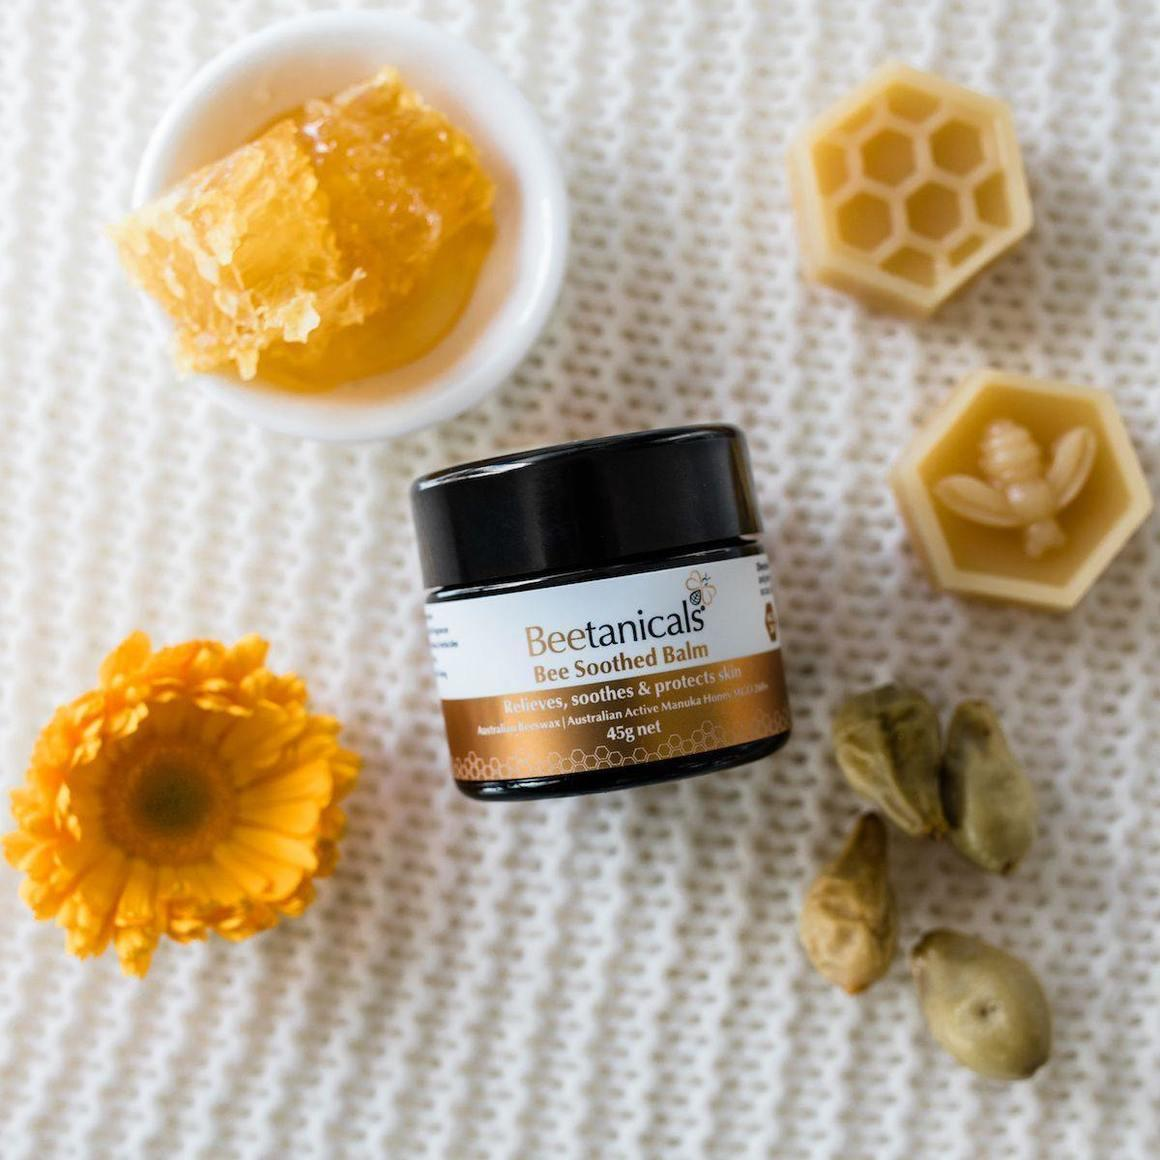 Beetanicals - Bee Soothed Balm   Trada Marketplace